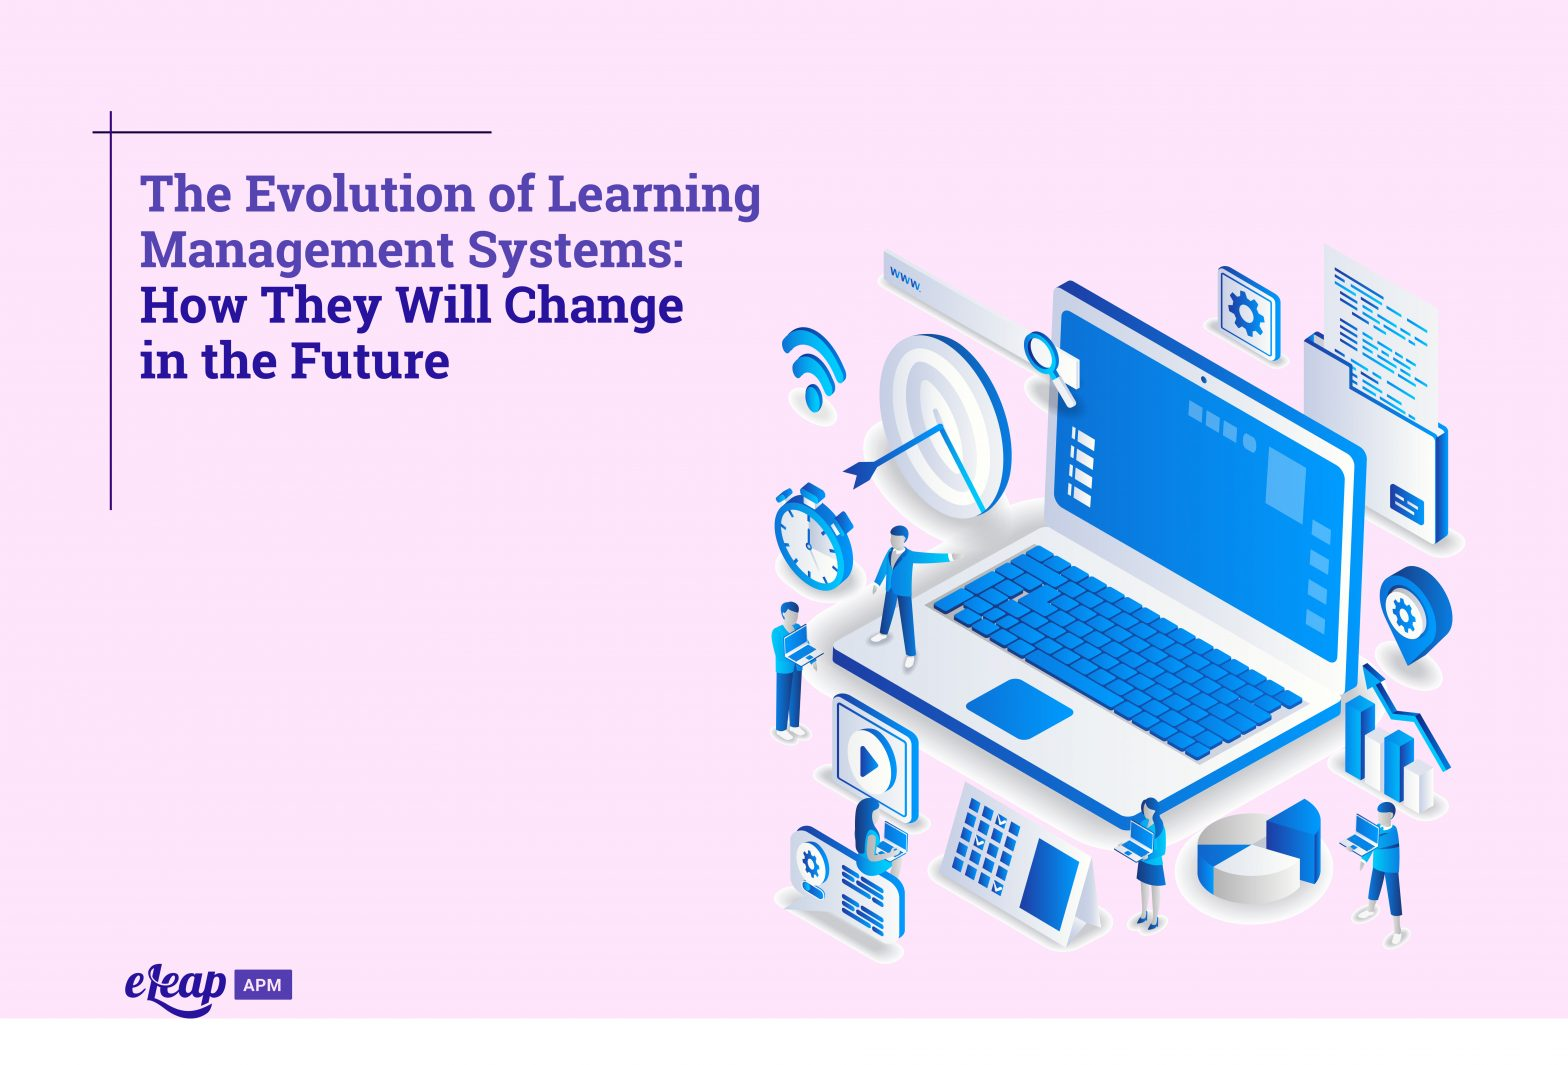 The Evolution of Learning Management Systems: How They Will Change in the Future